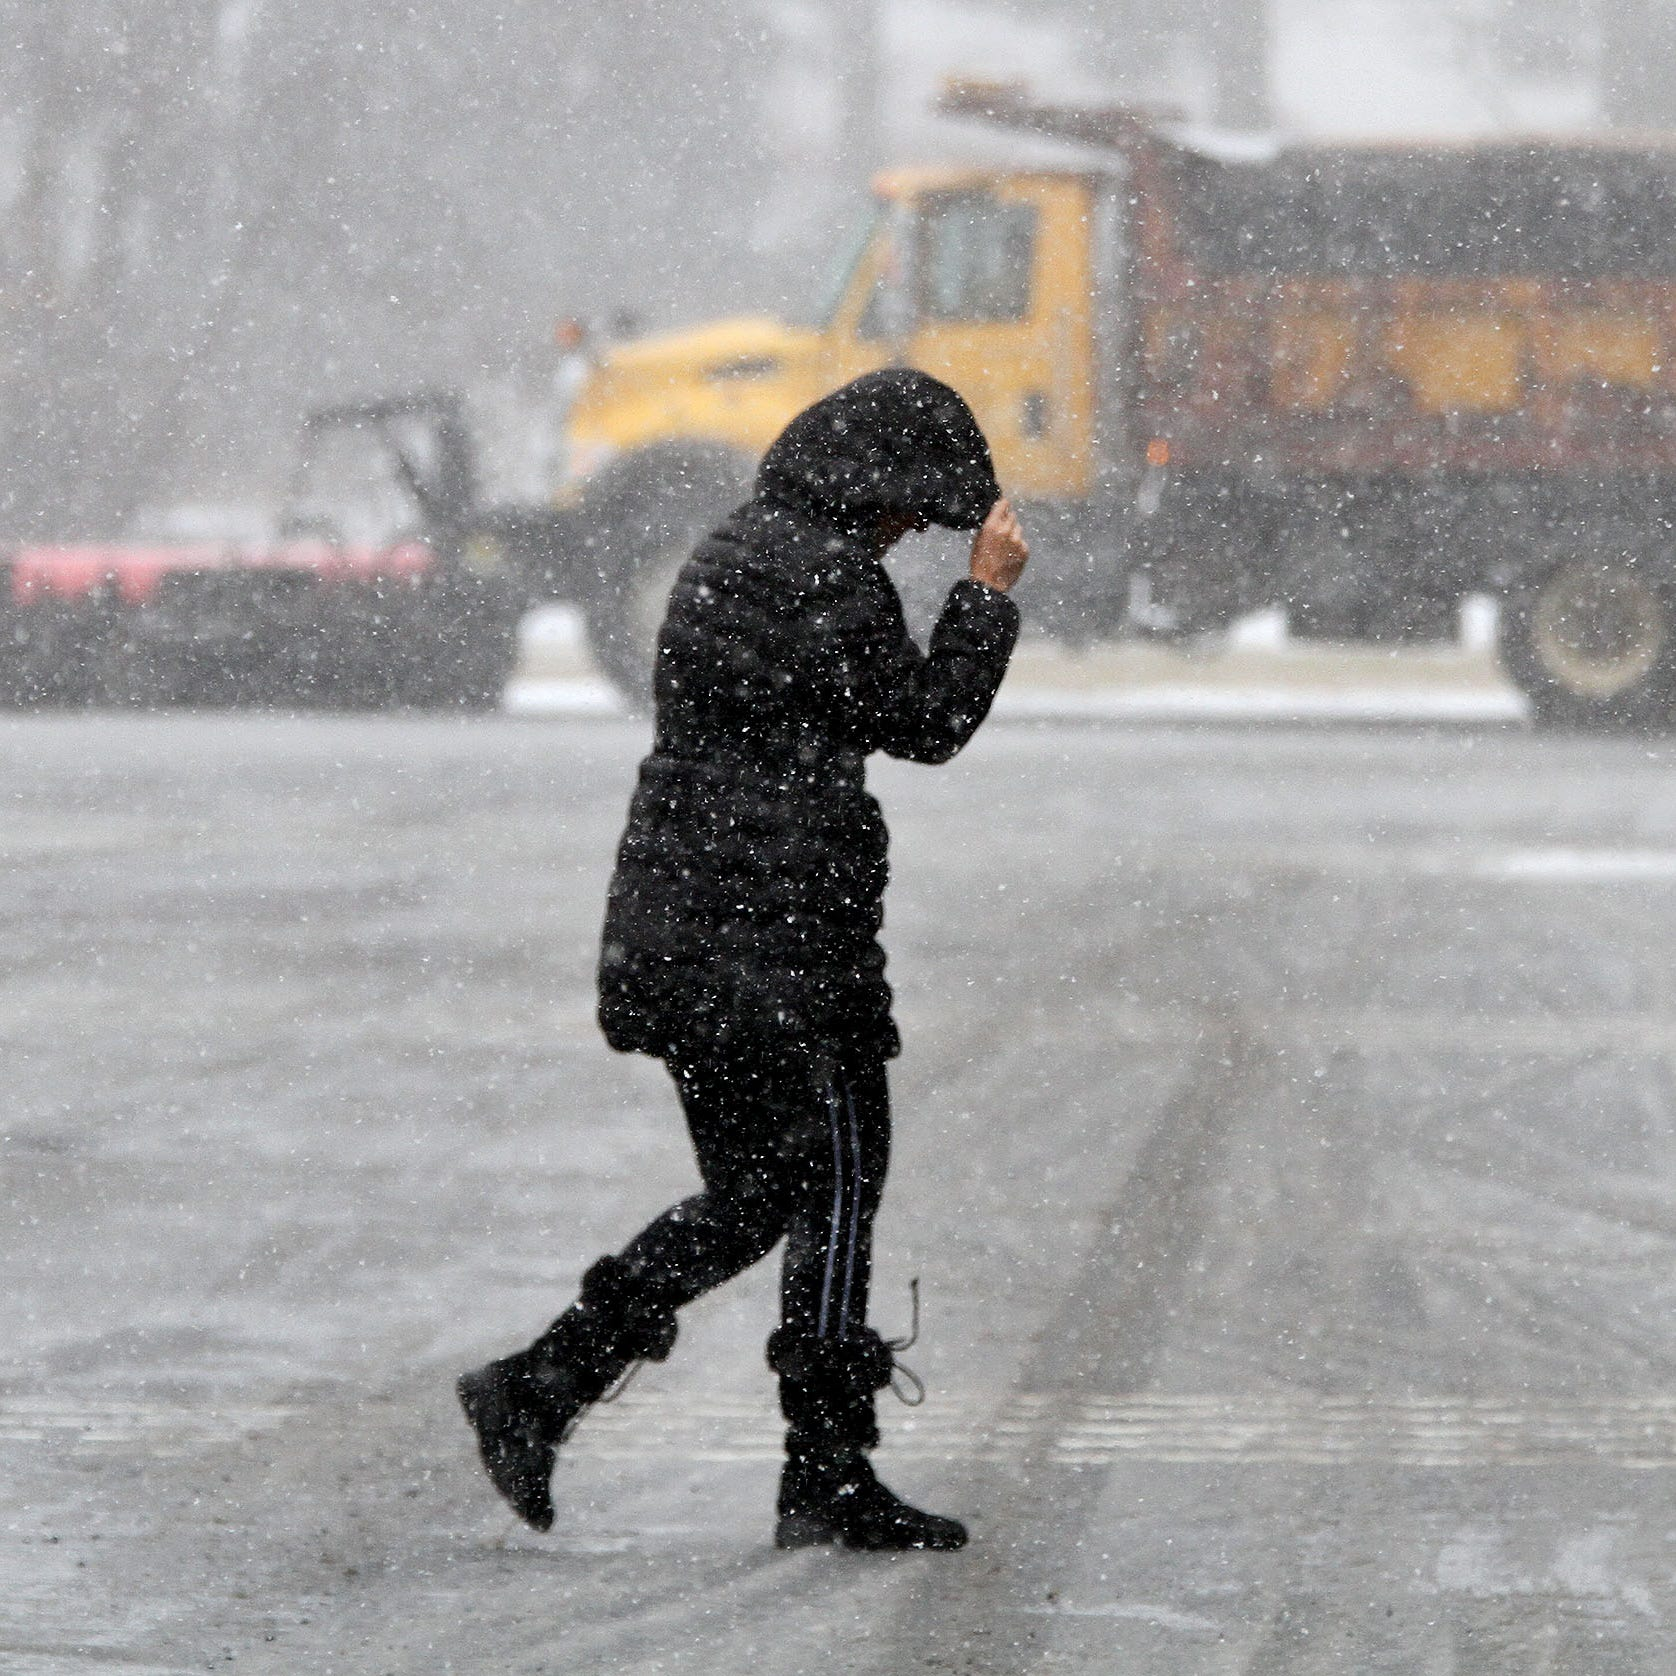 NJ weather: Slick conditions in central, northern counties will impact commute